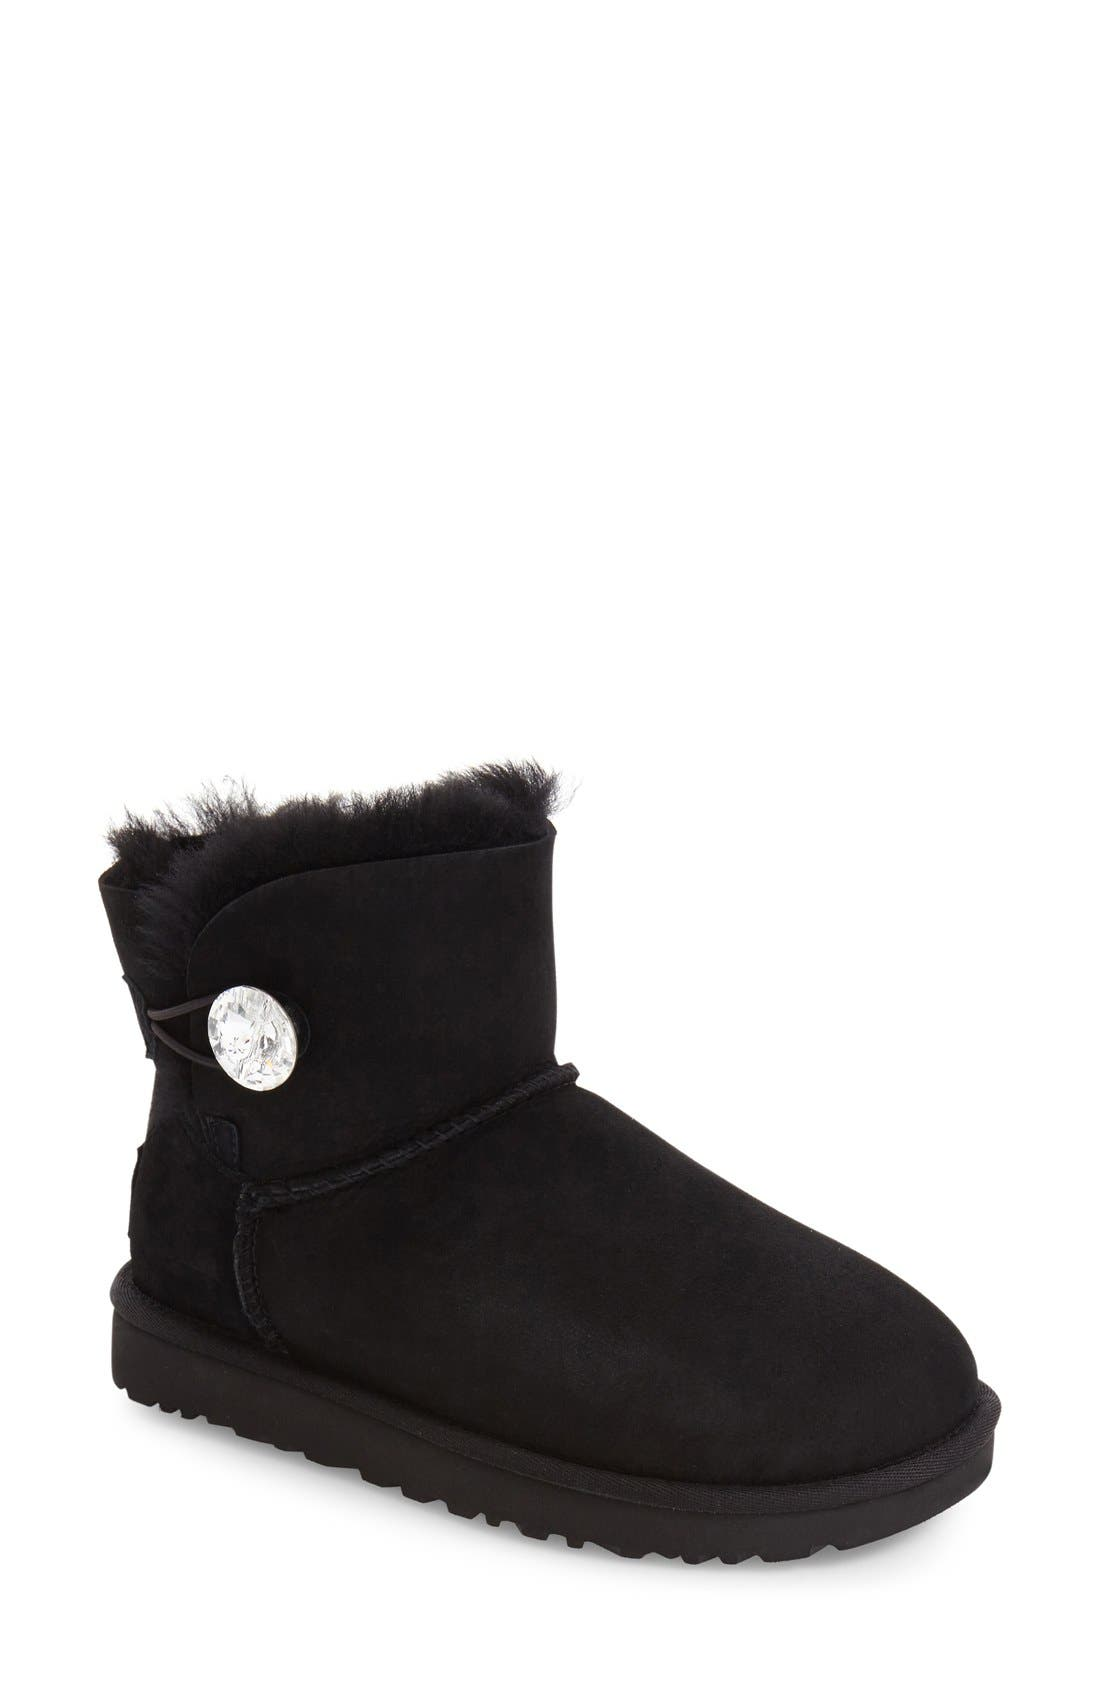 Alternate Image 1 Selected - UGG® Mini Bailey Button Bling Boot (Women)